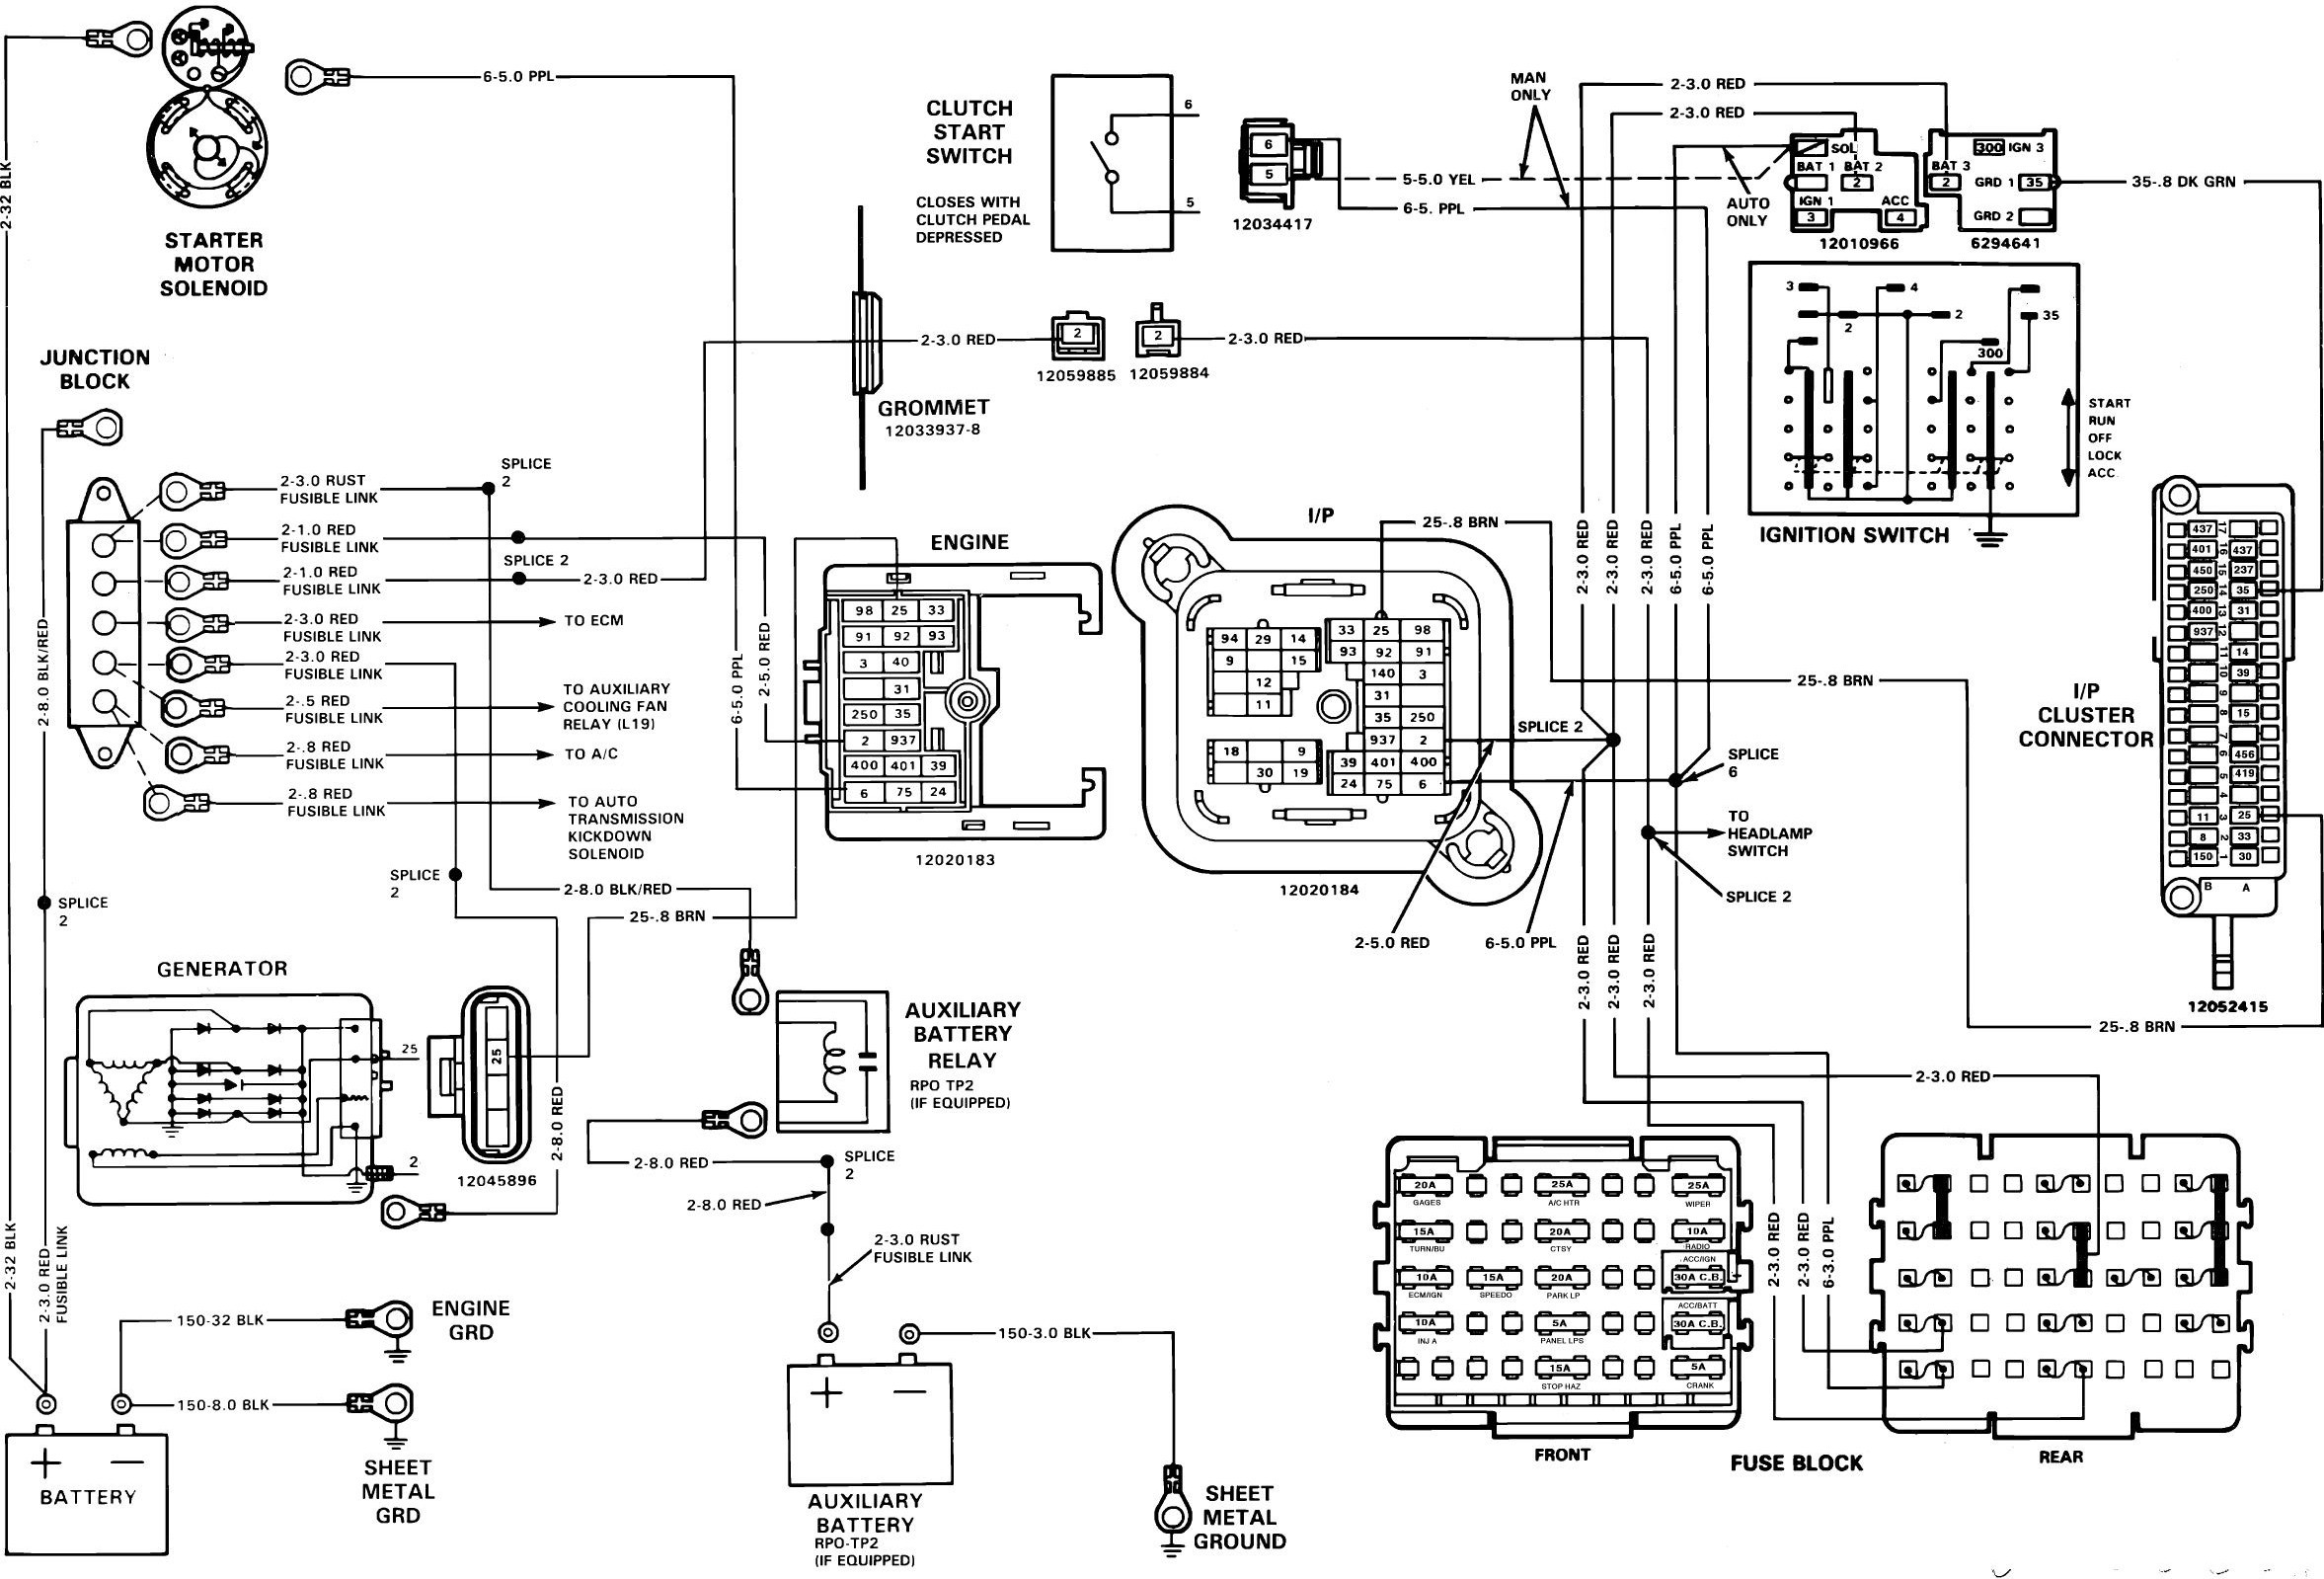 silverado wiring diagram 89 chevy 4 u00d74 wiring diagram